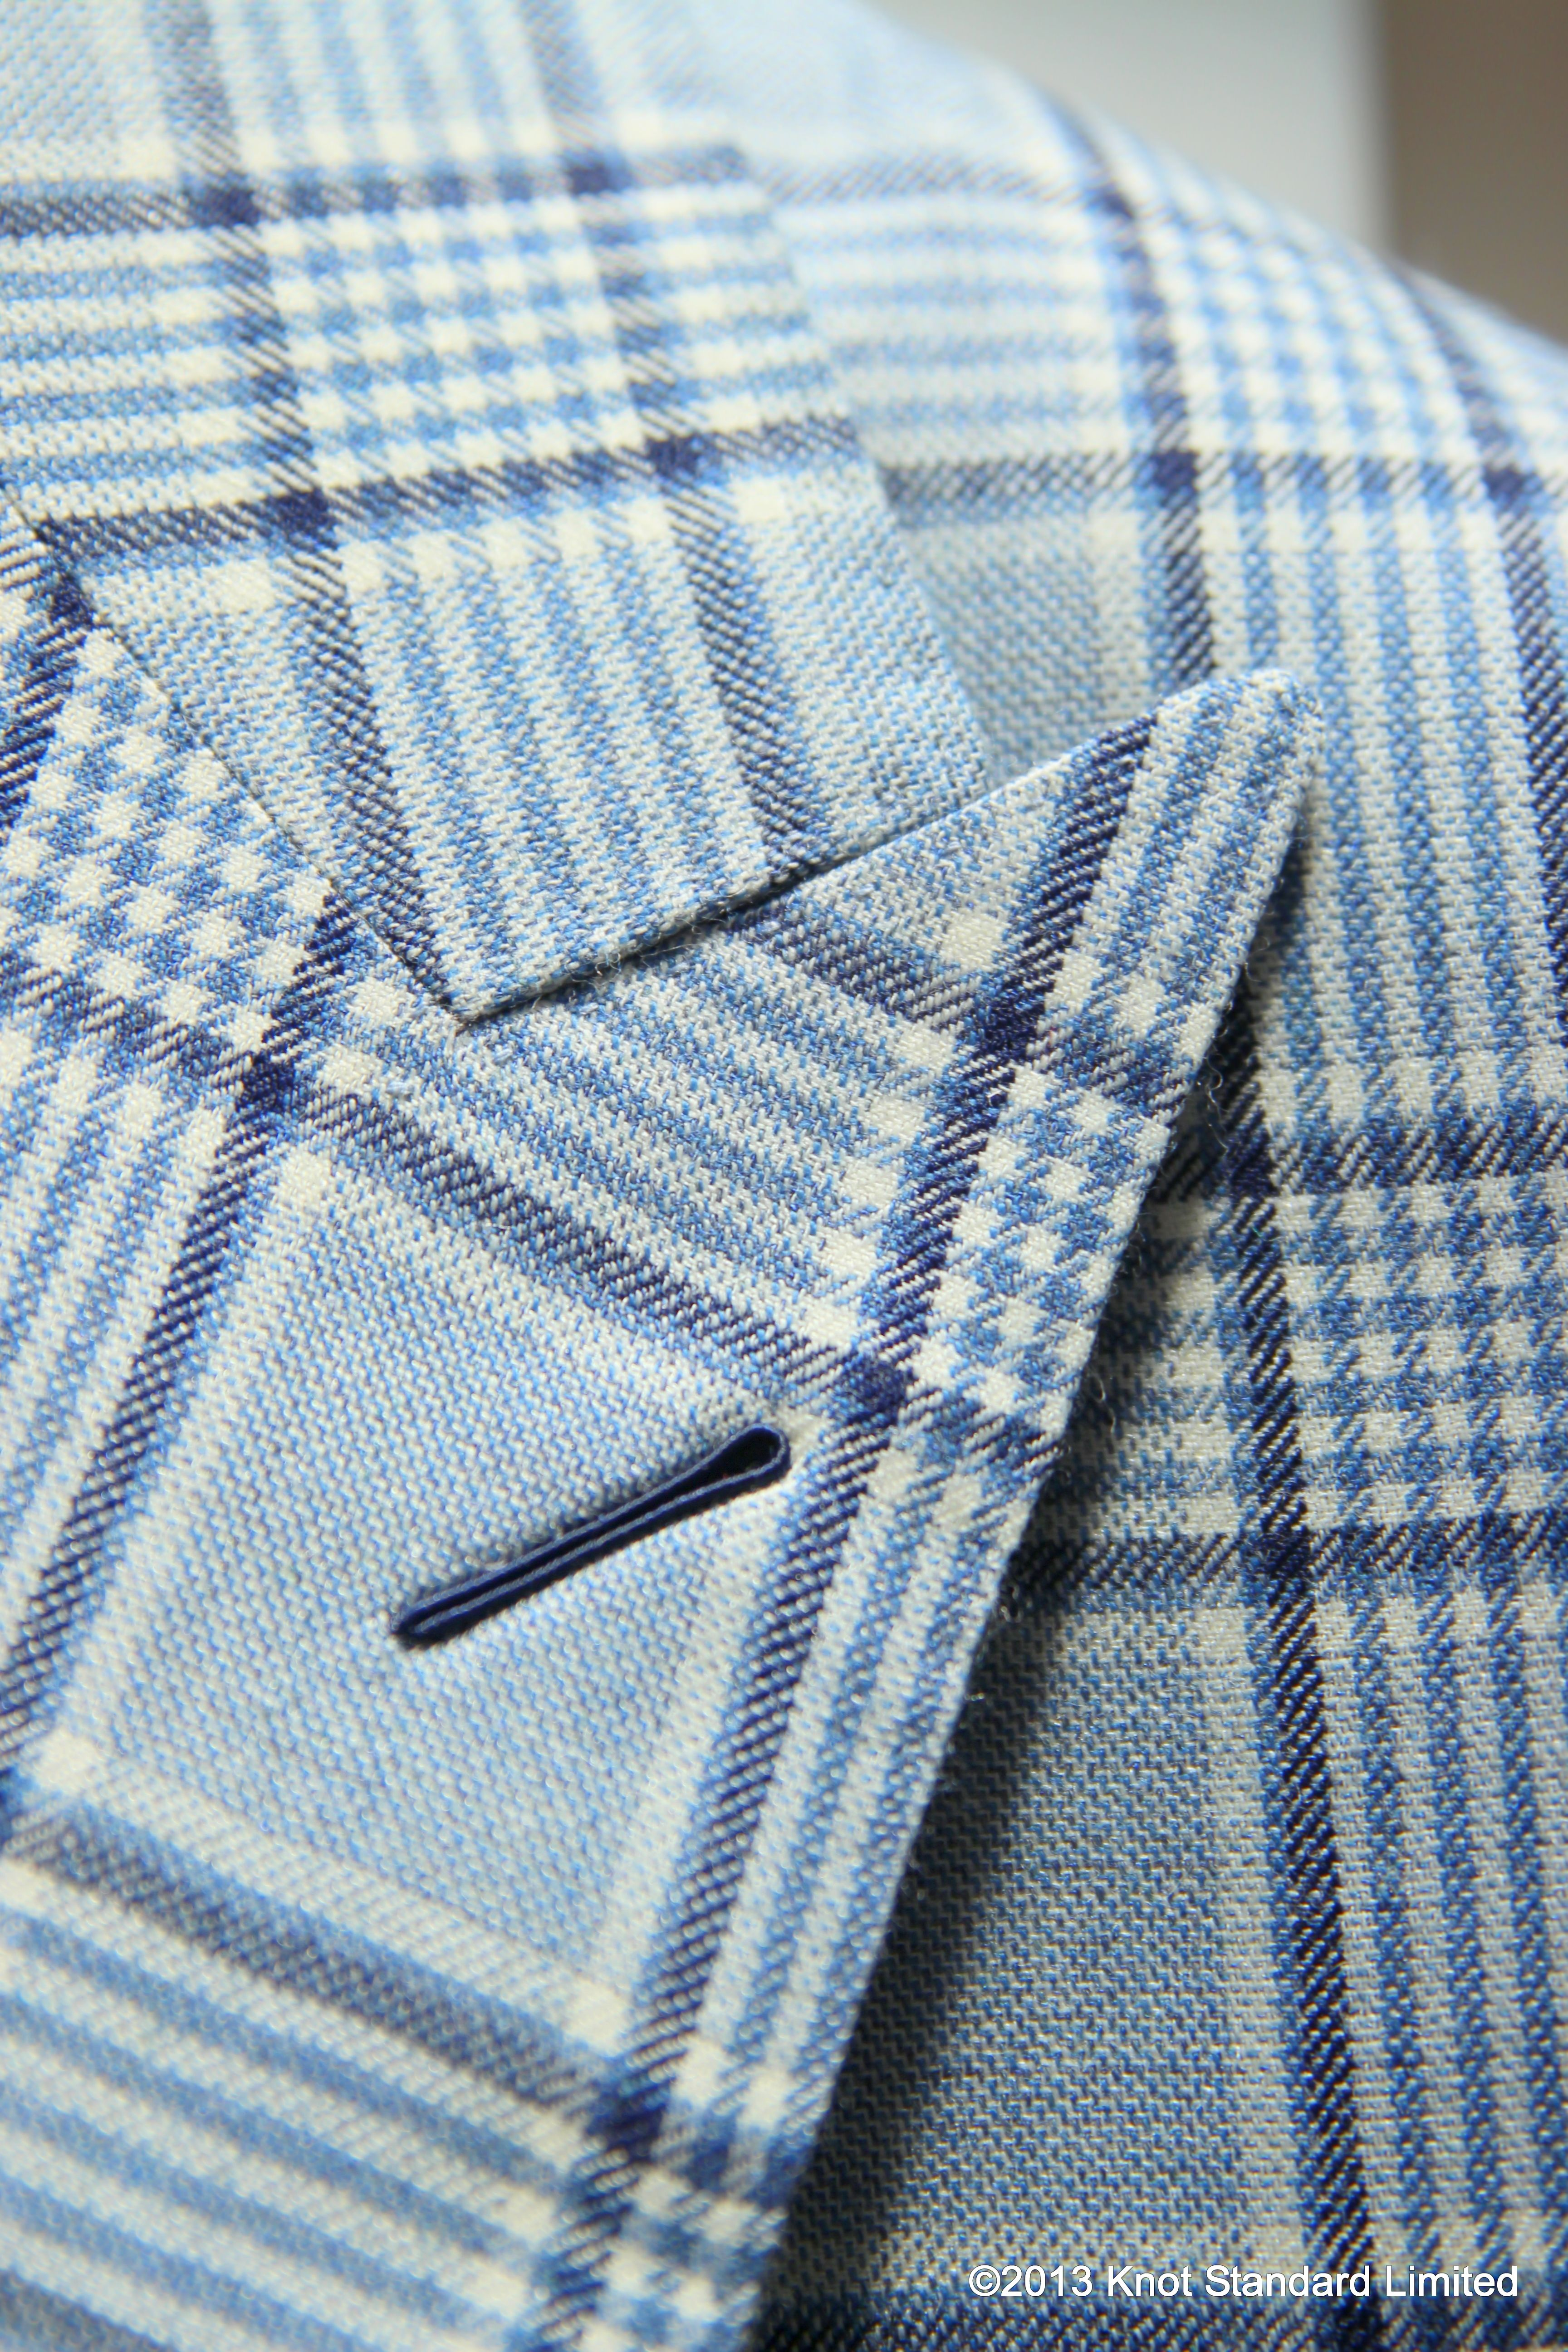 Milanese Buttonhole : milanese, buttonhole, Milanese, Buttonhole, Hours, Hand-stitched, Perfection., People, Won't, Notice, Tailoring, Details,, Fashion, Sartorial